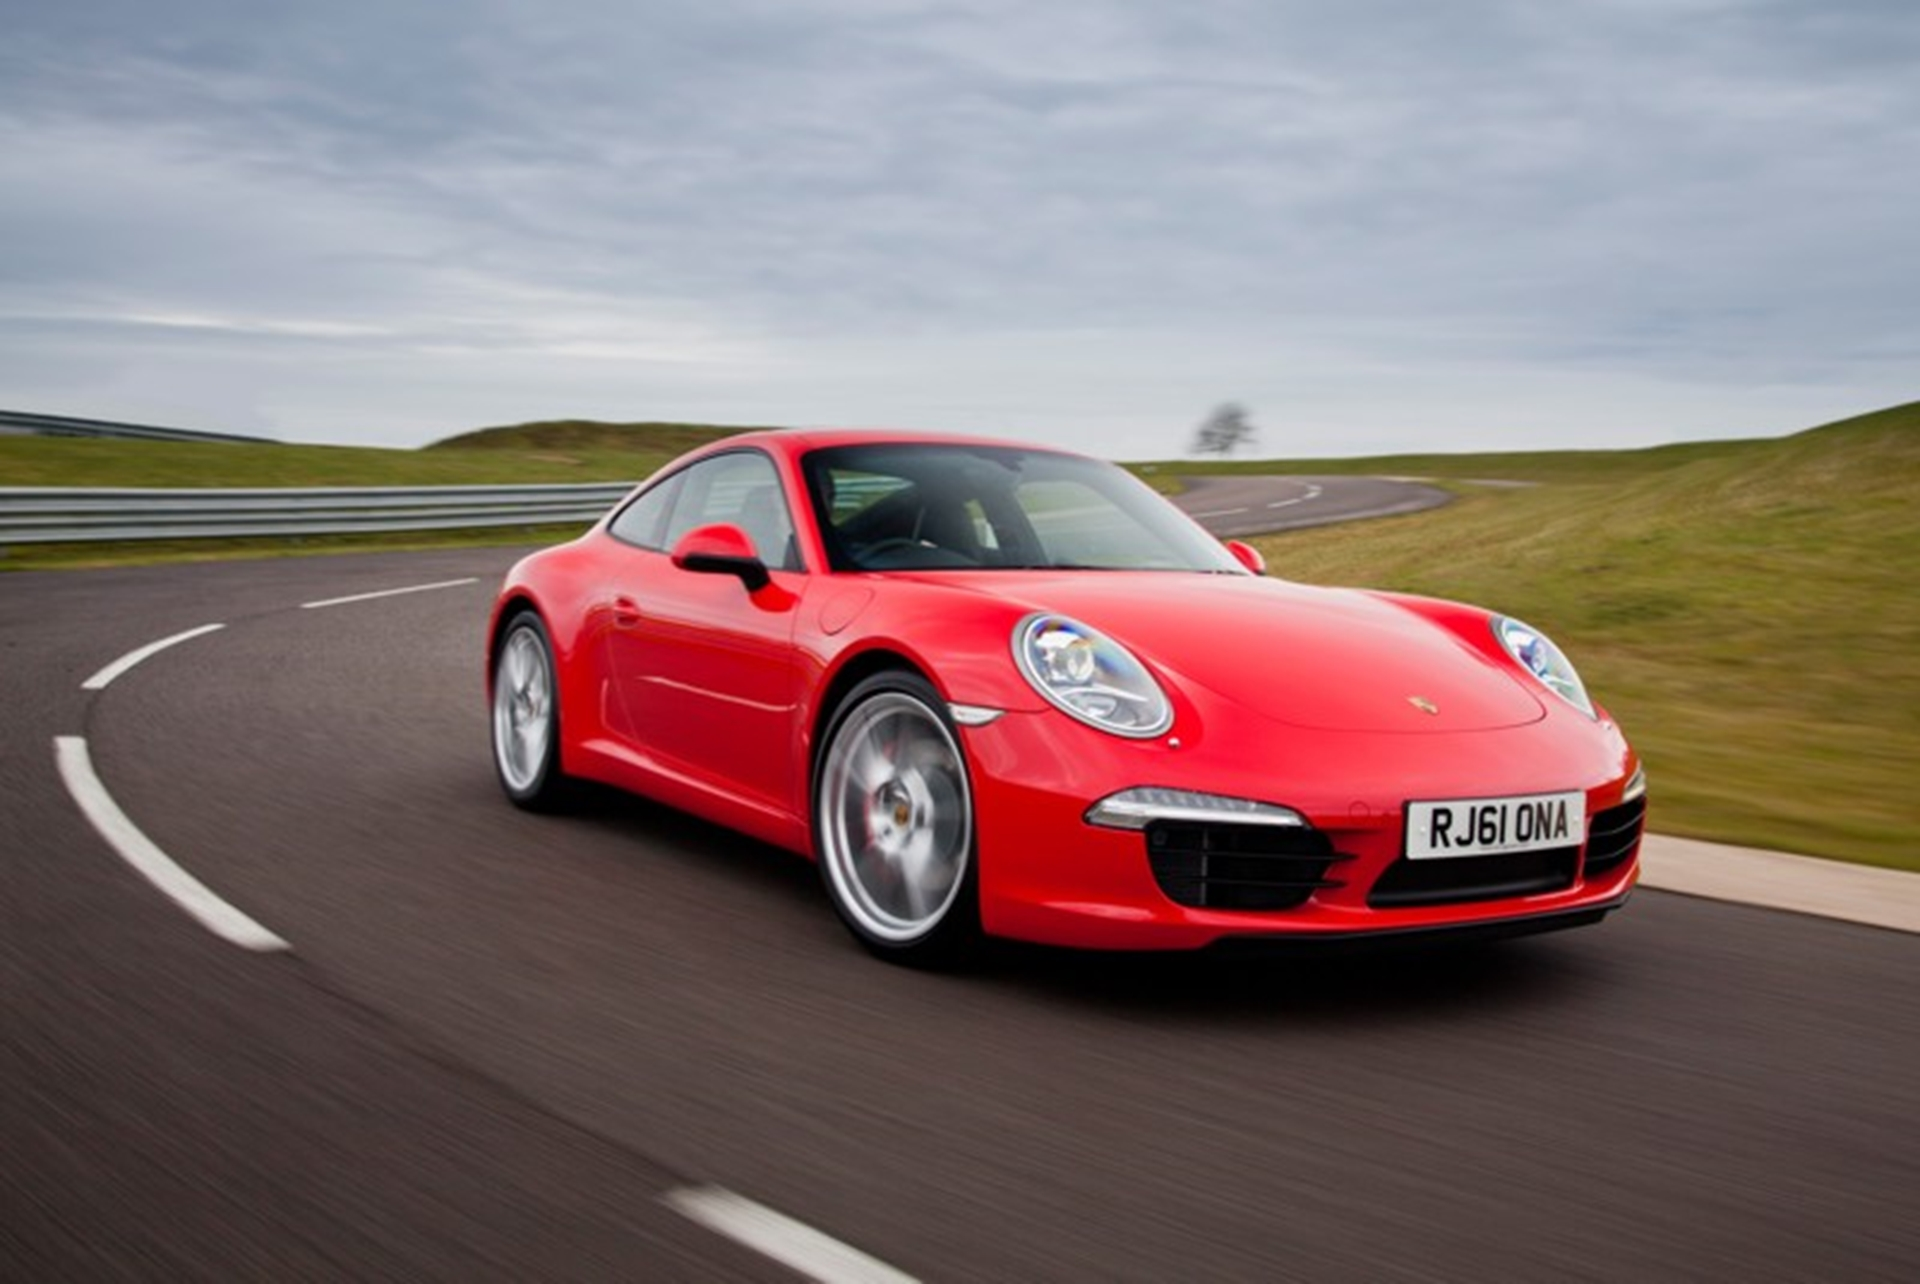 The new Porsche 911 Carrera makes its public show debut